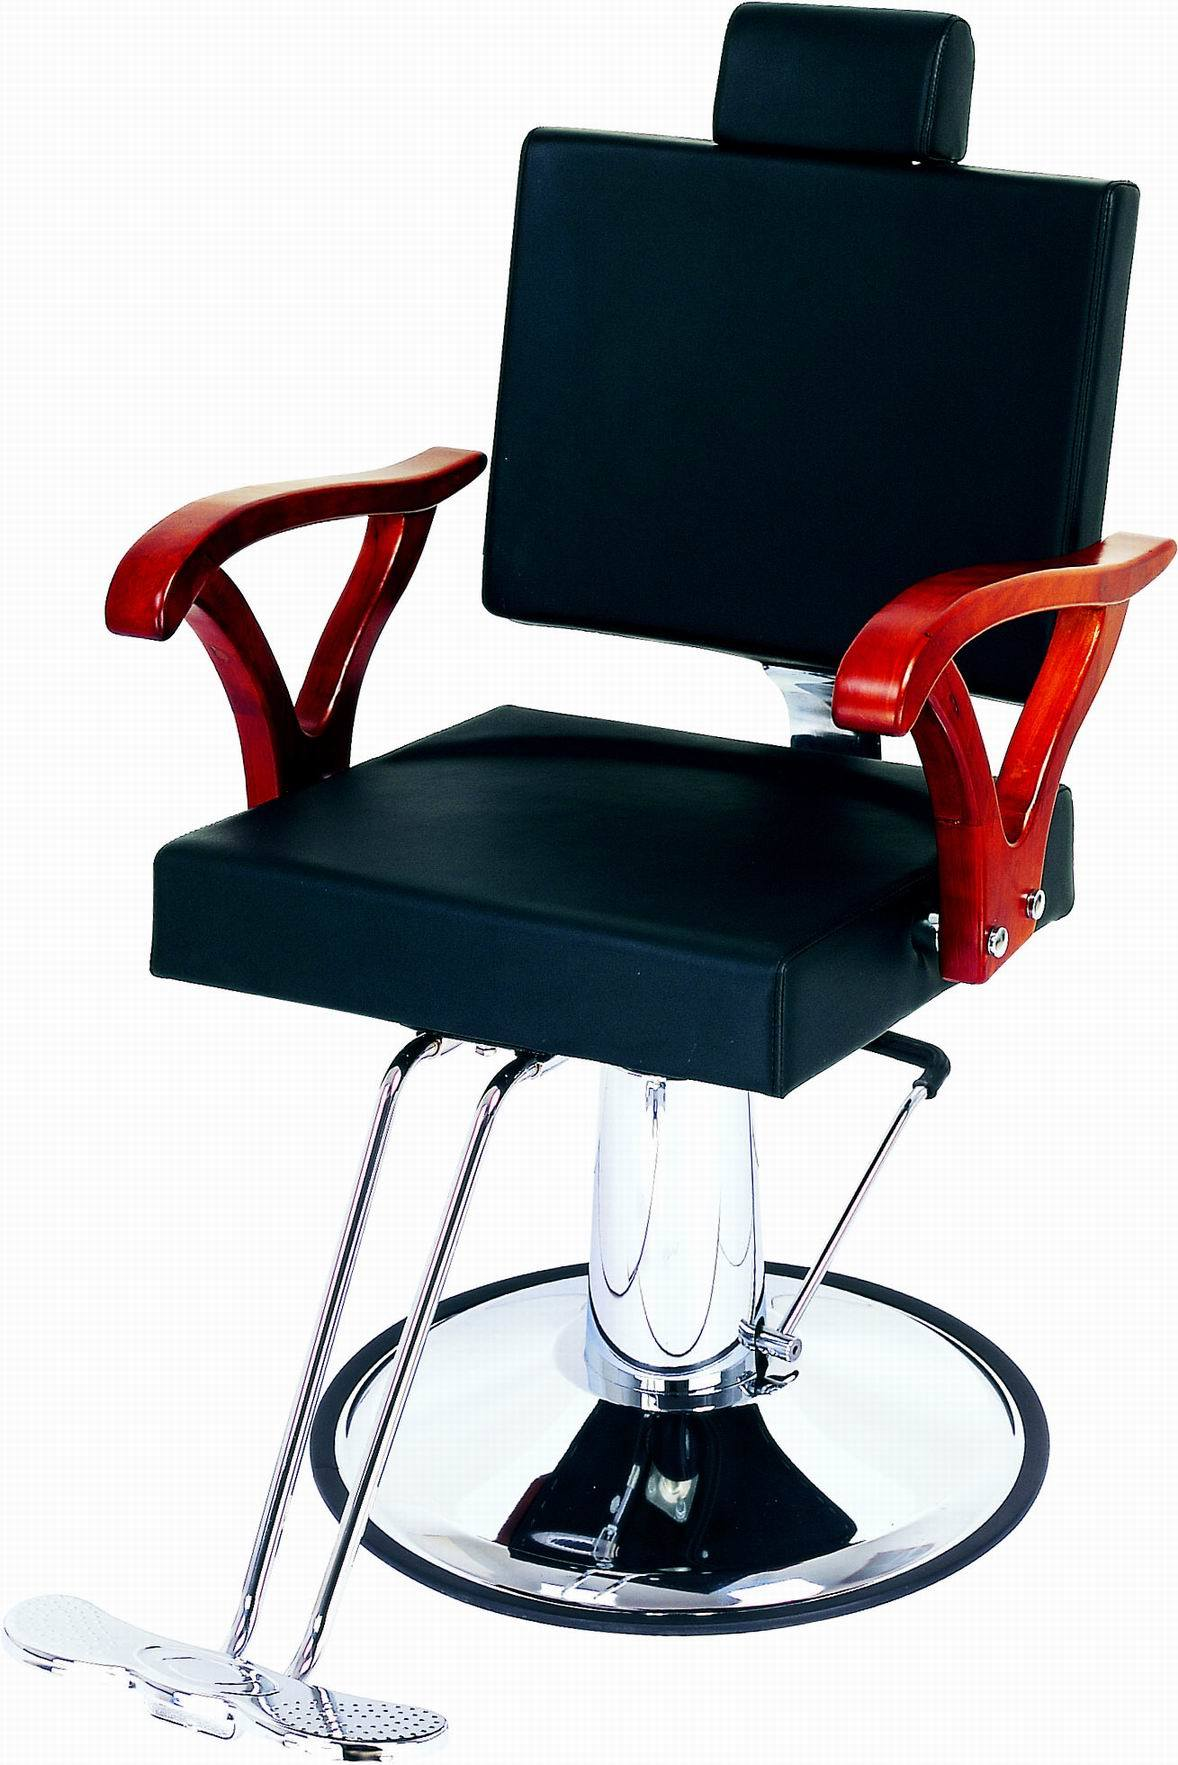 hydraulic salon chair ly6310c china hairdressing chair